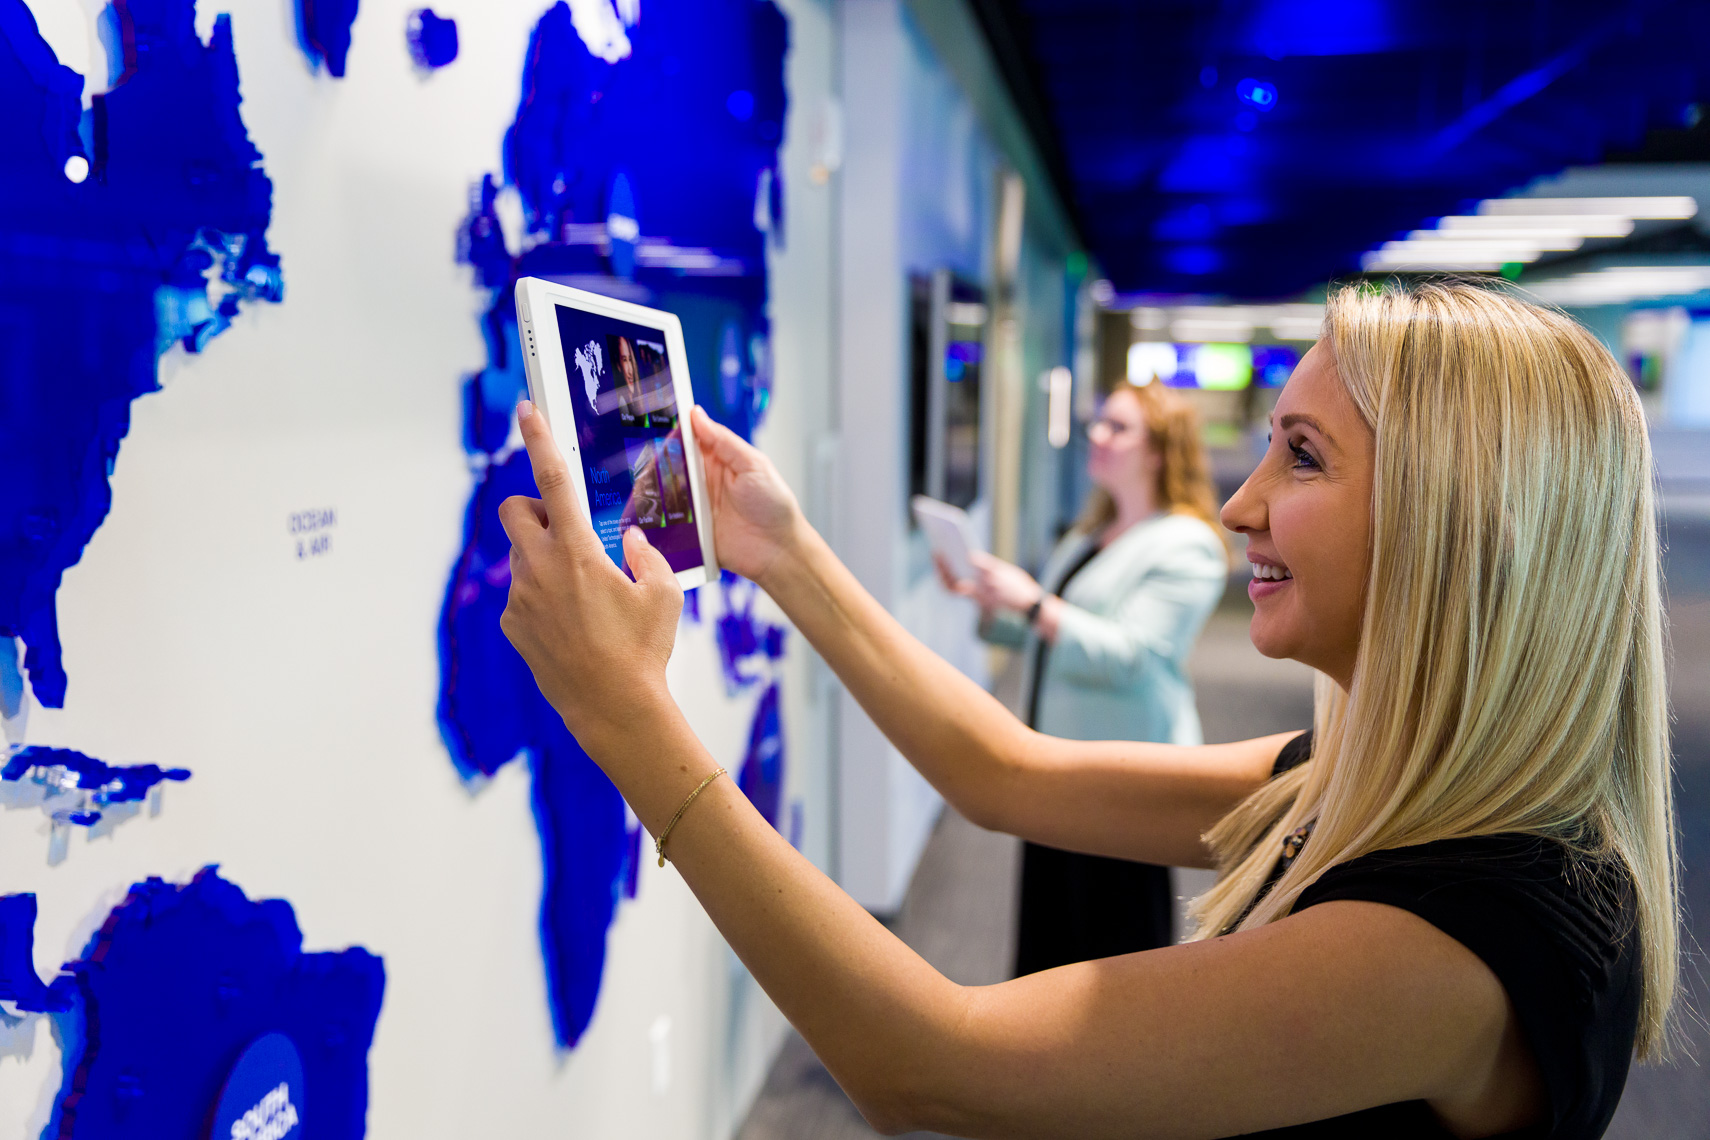 Two women interact with a technology wall and tablets